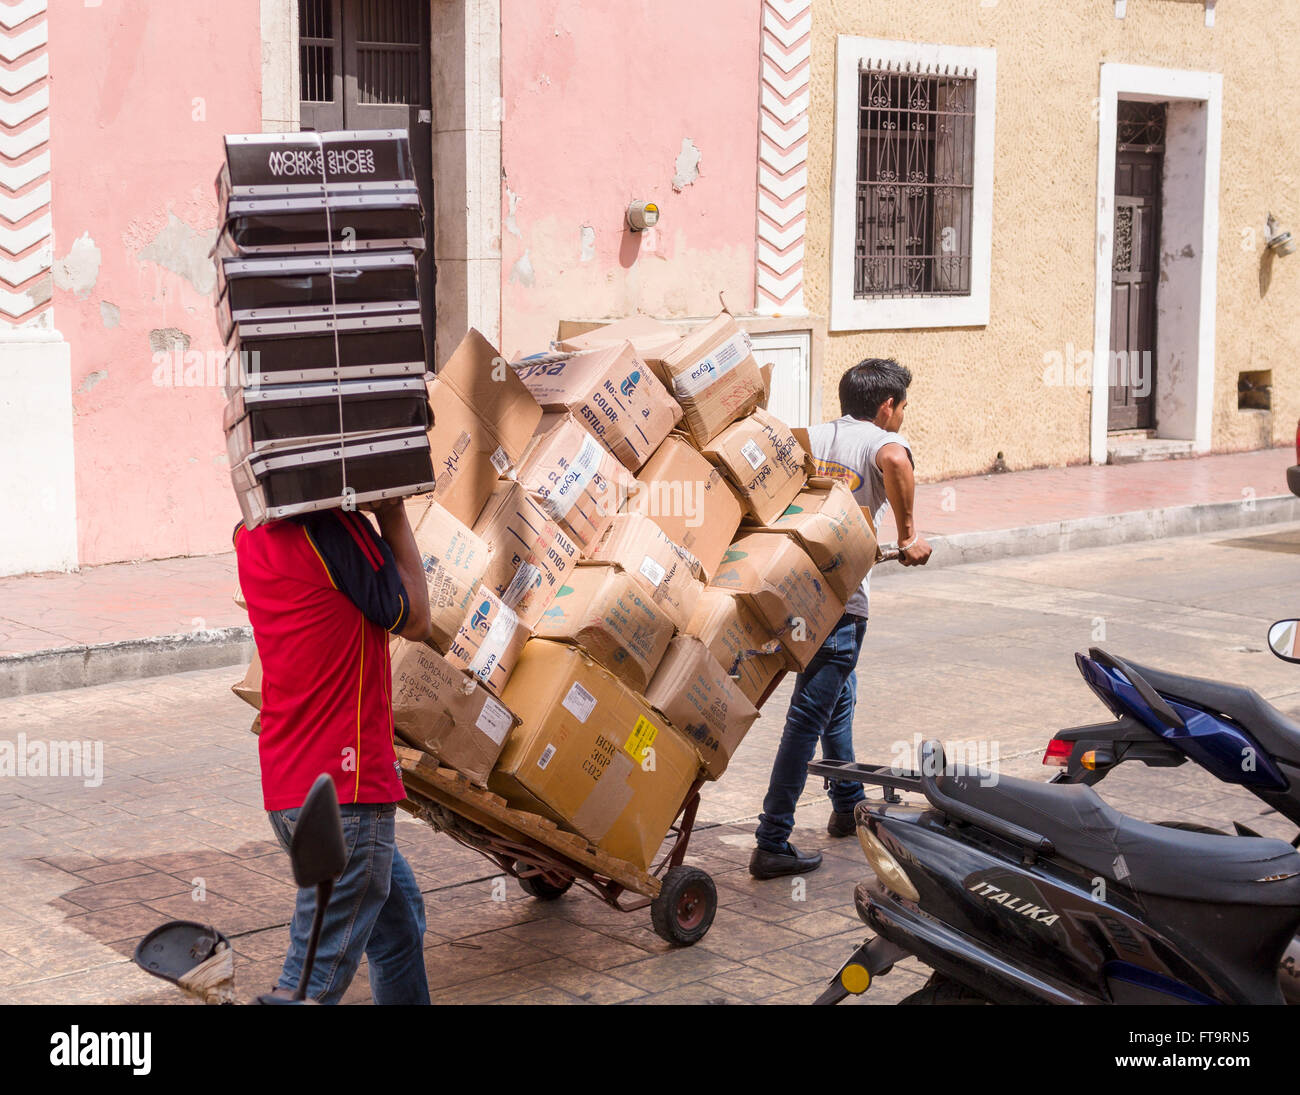 Shop Deliveries. Two men, one with a pull cart and one with shoe boxes piled high walk the cobbled street to deliver - Stock Image